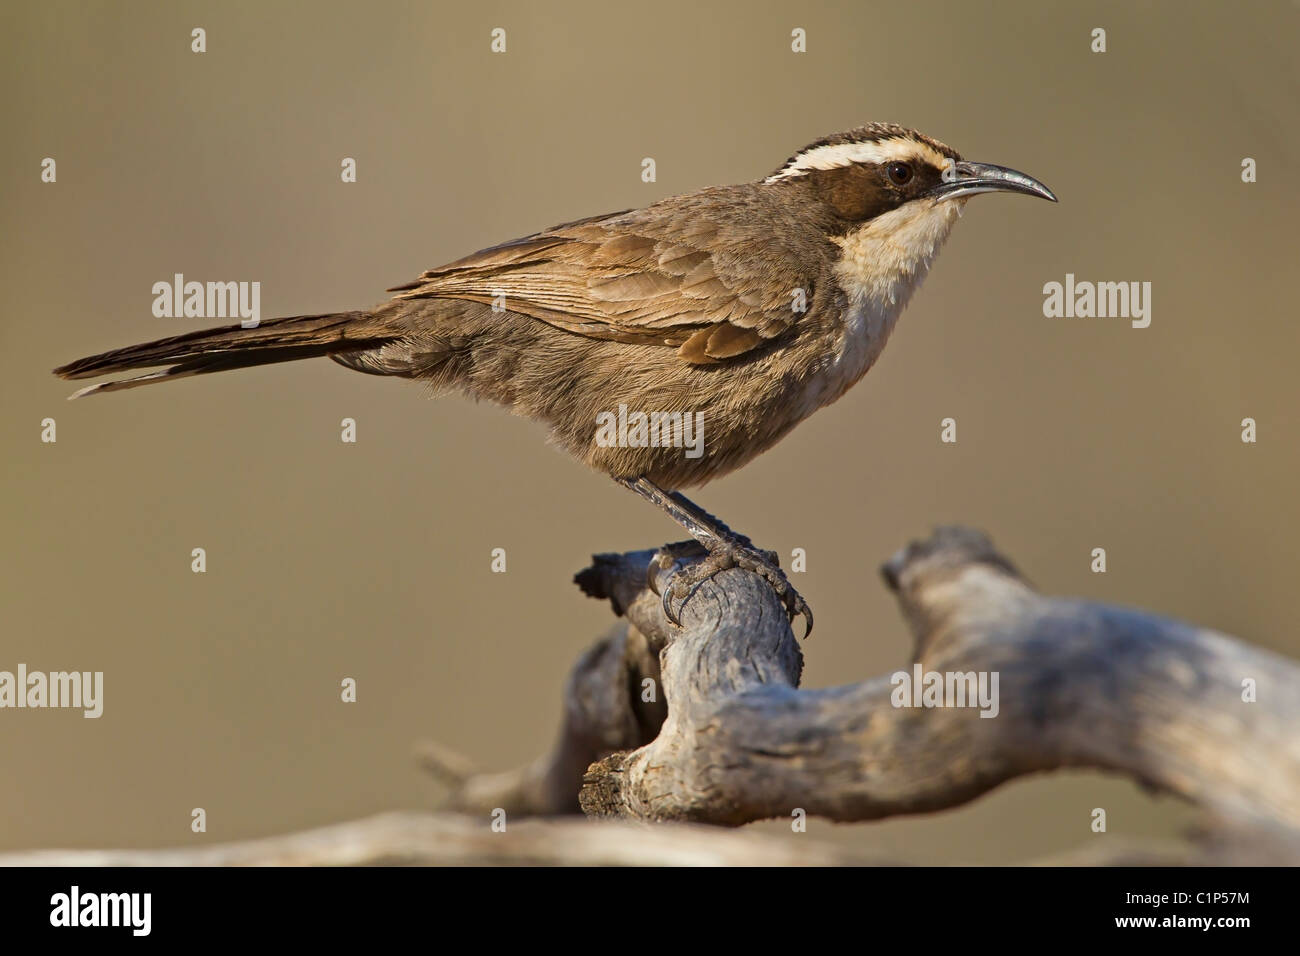 White-browed Babbler perched in an old dead tree. - Stock Image